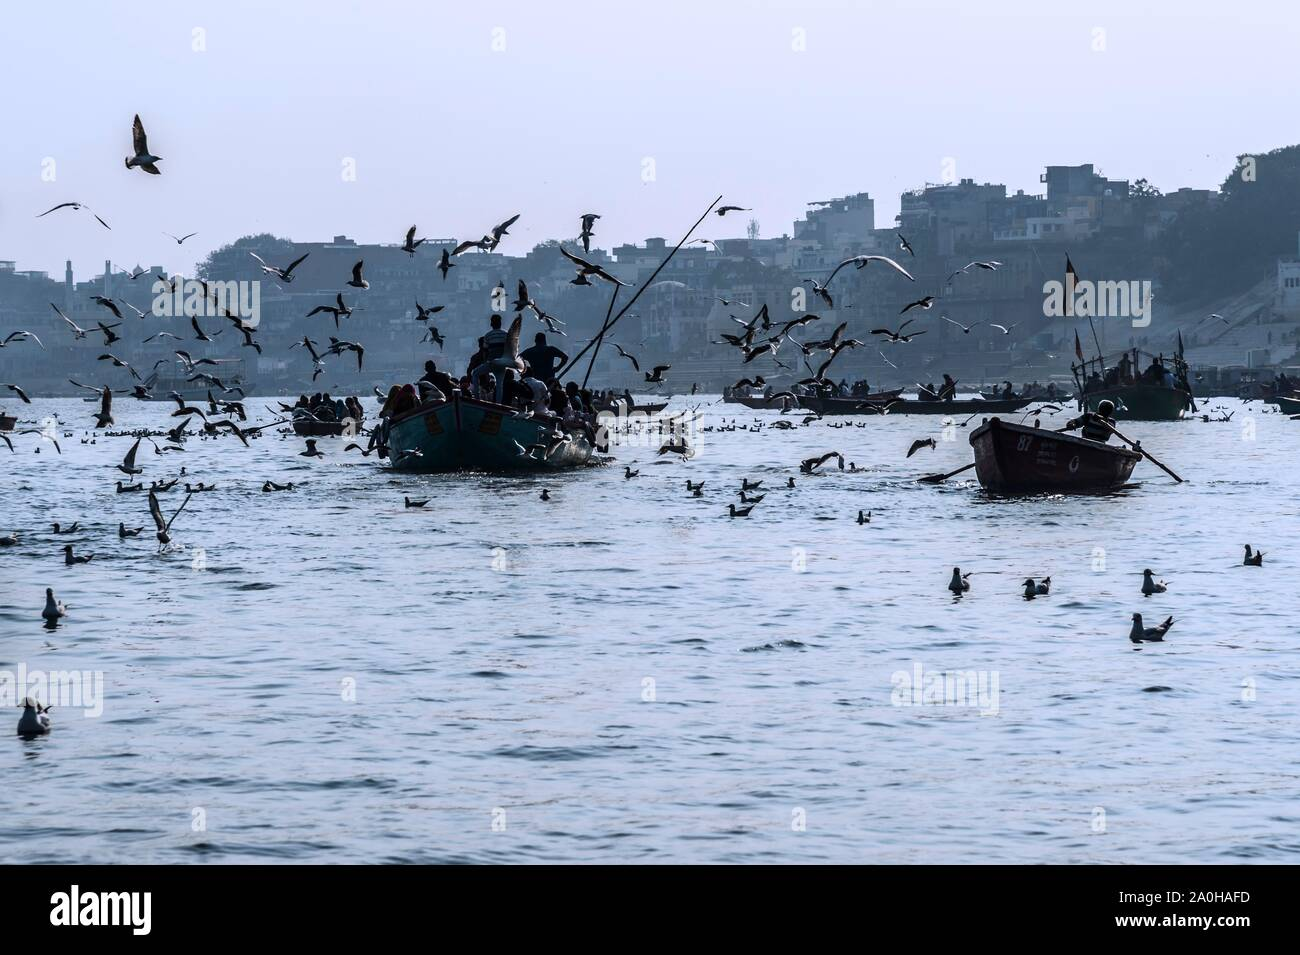 Boats full of people navigating on the Ganges river, surrounded by flying gulls, Varanasi, Uttar Pradesh, India Stock Photo